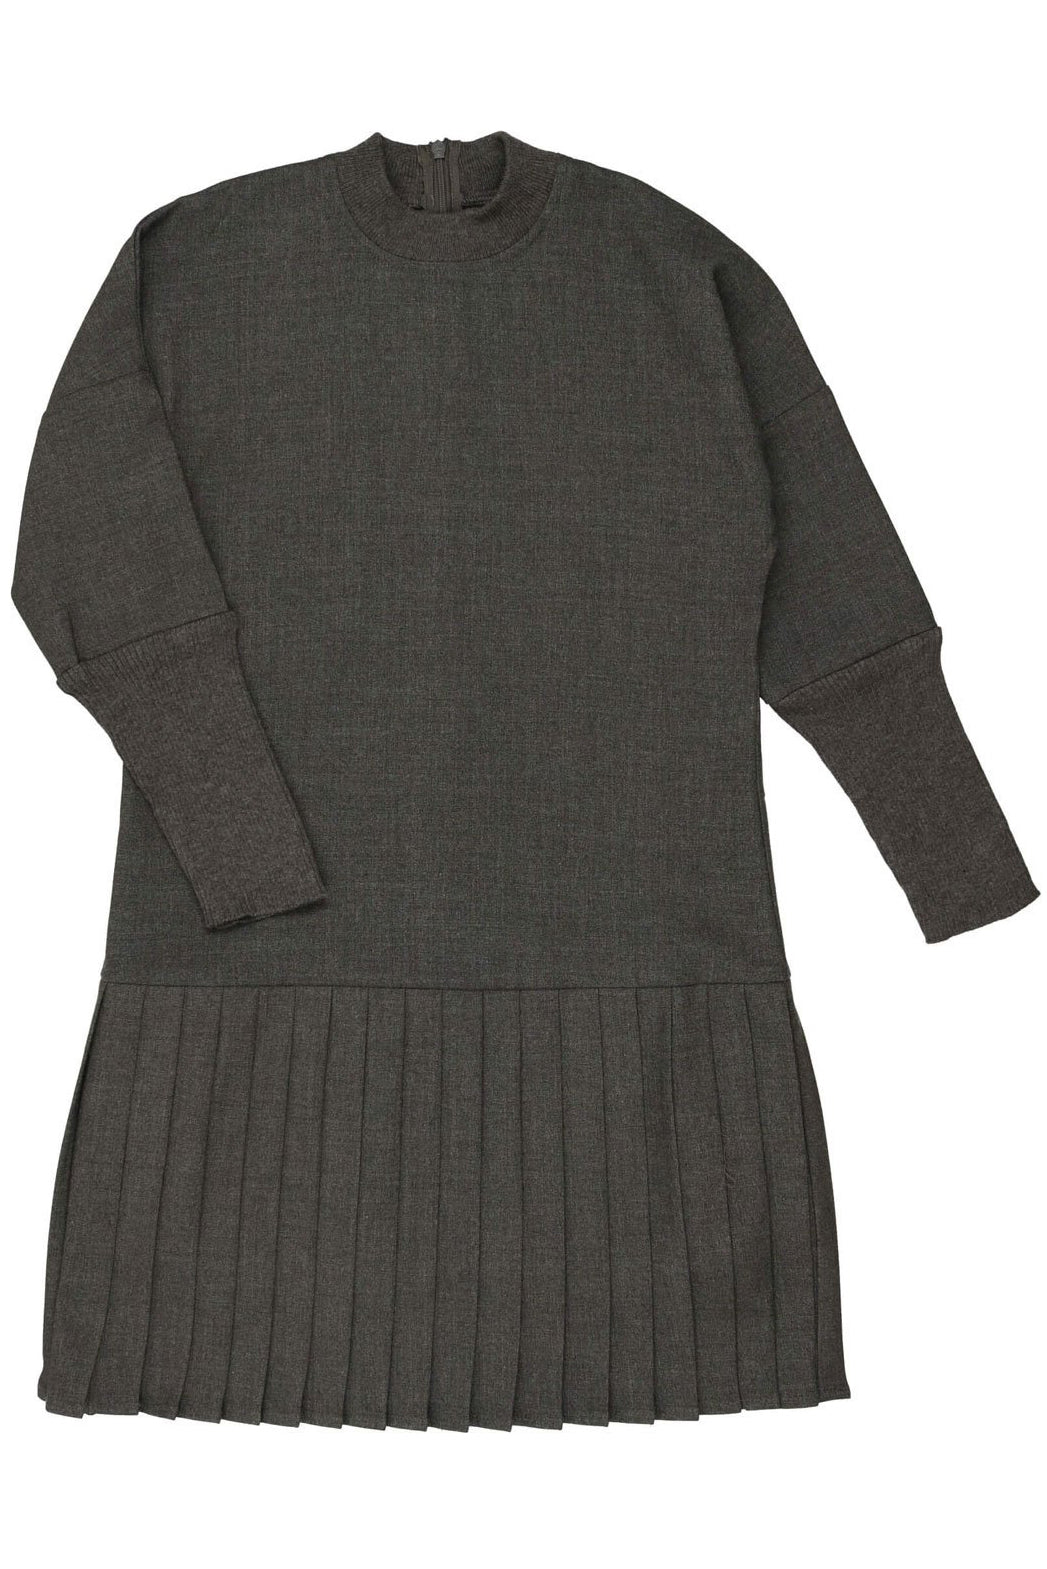 Cocoblanc wool pleated dress